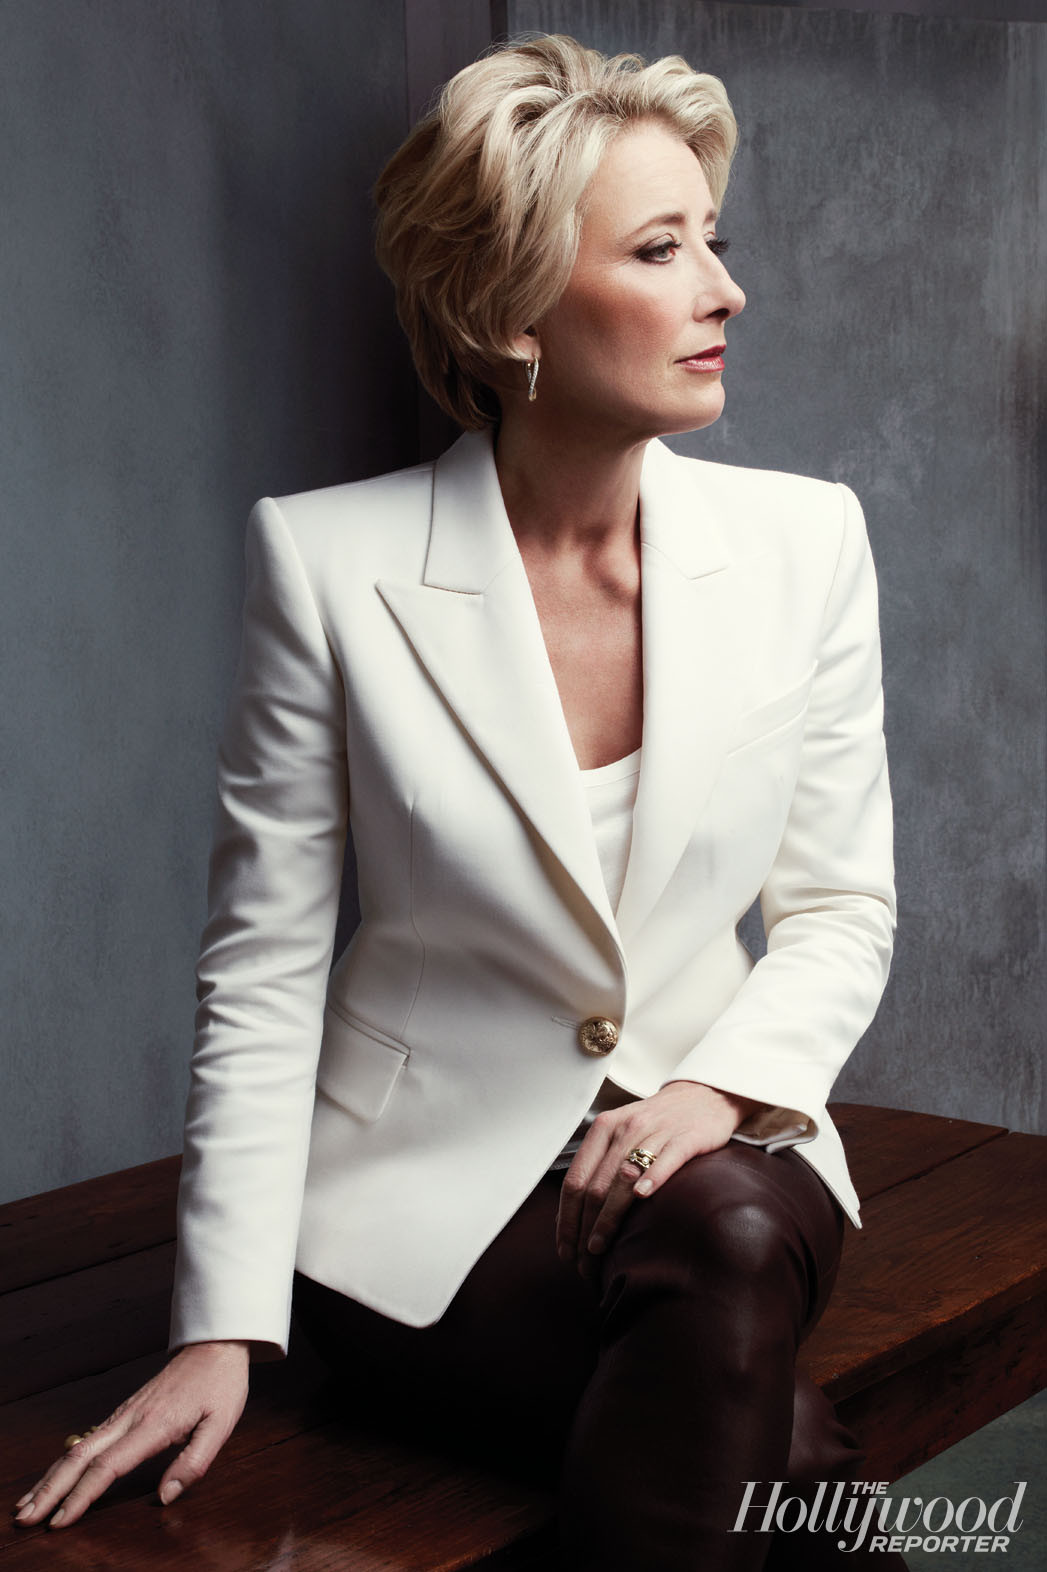 Beautiful Emma Emma Thompson Photo 36658629 Fanpop